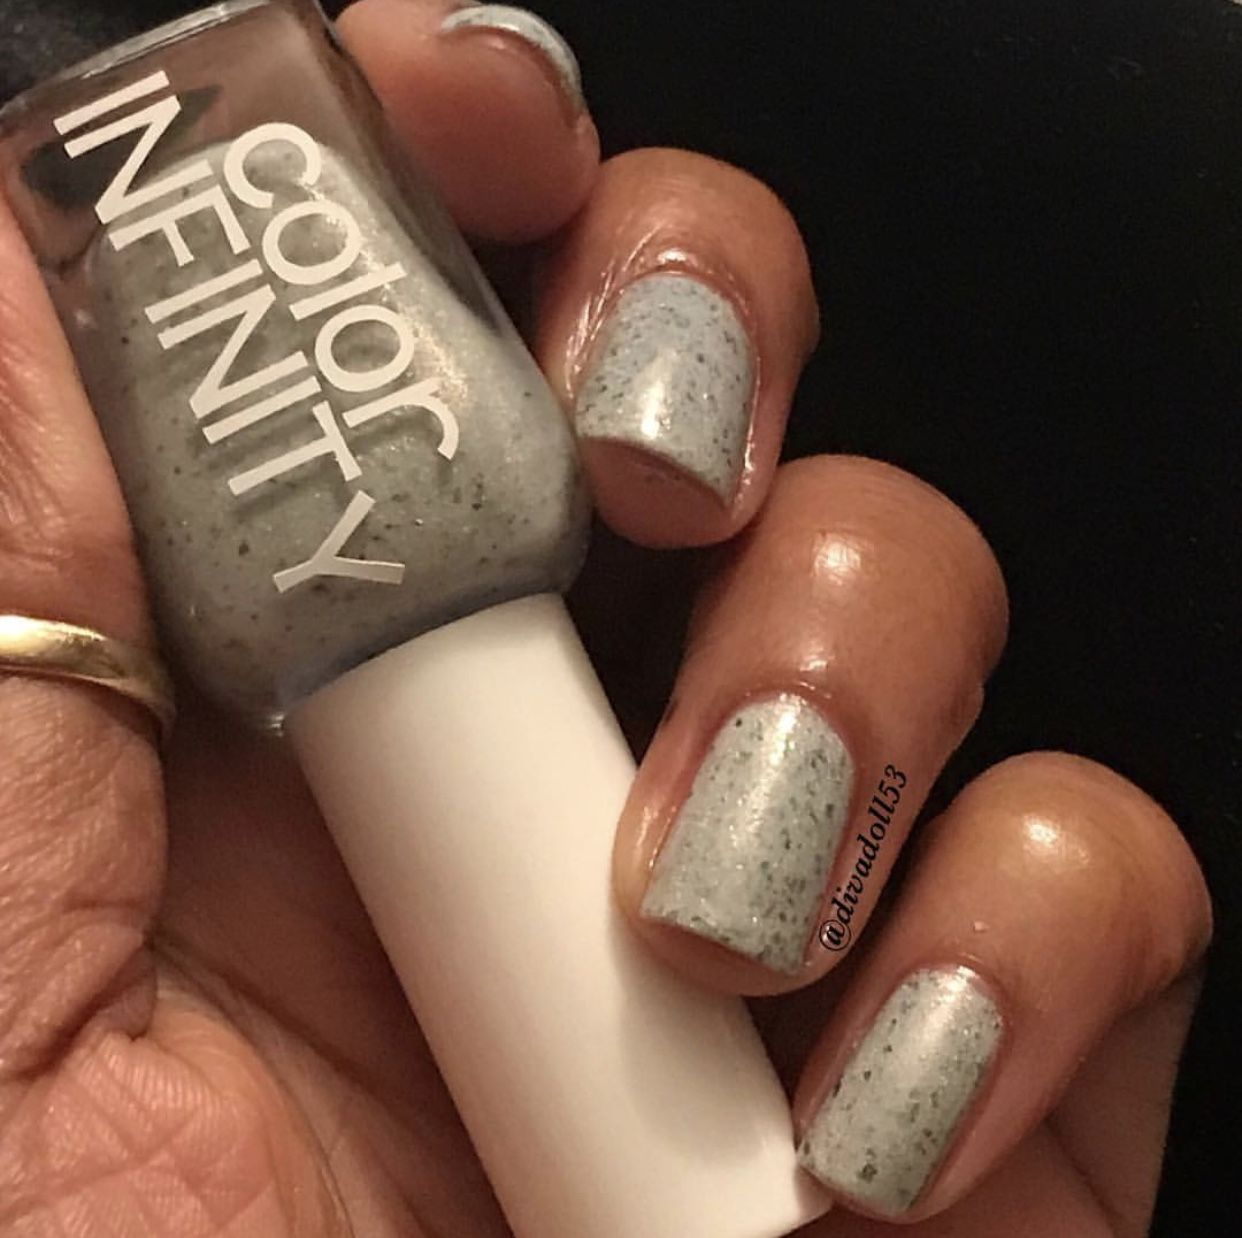 "Snowdrop"" from the Holo Winter Flower Collection by Color Infinity ..."